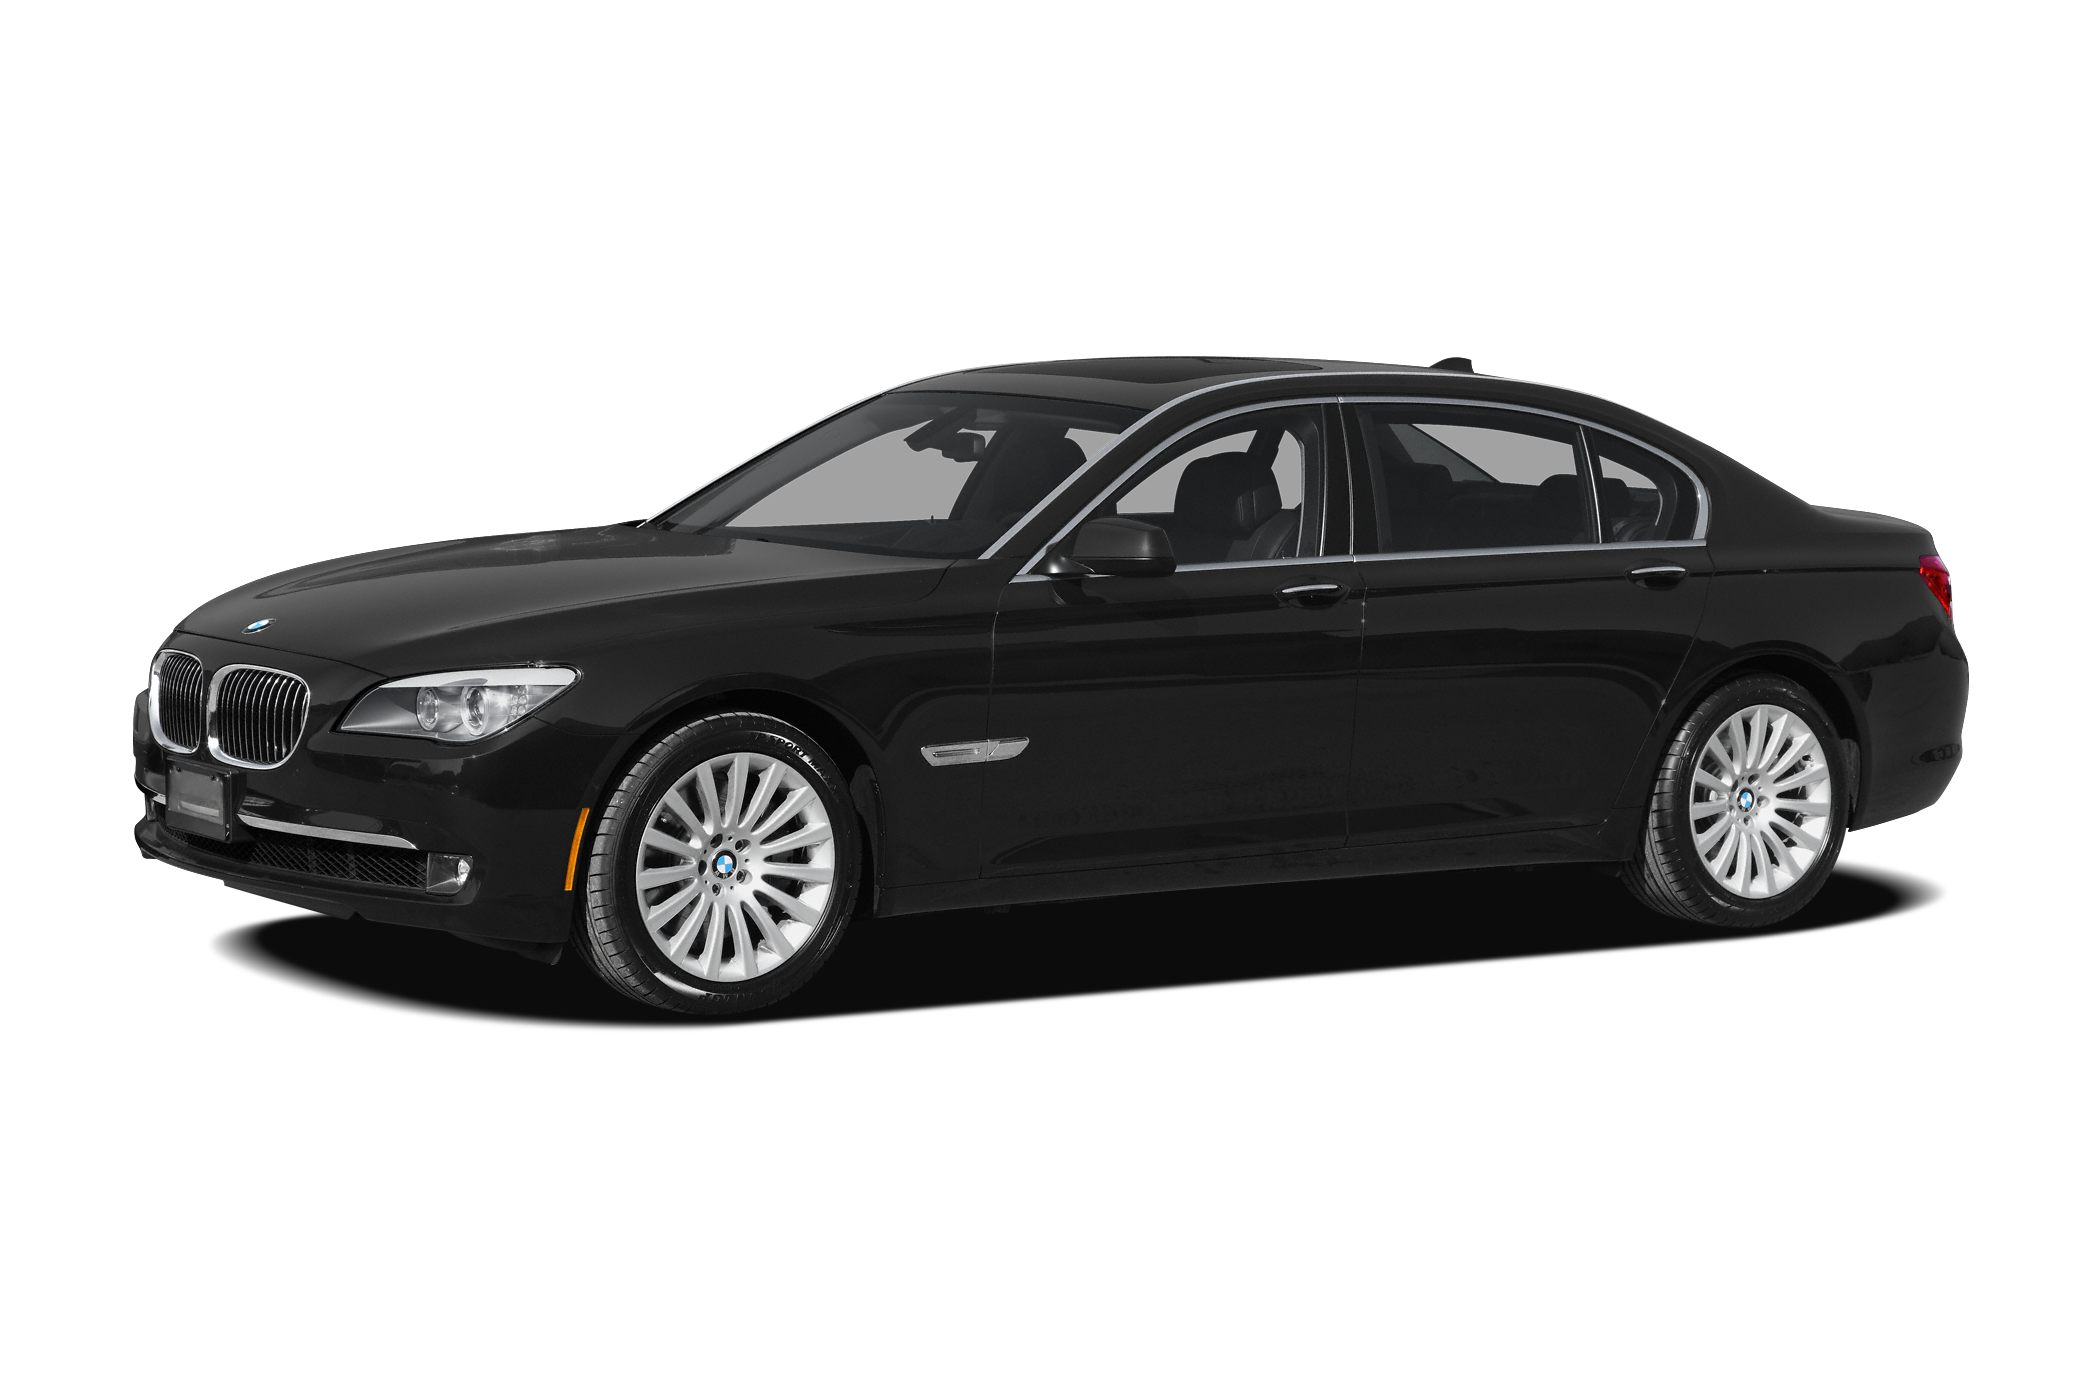 2012 BMW 750 Li Sedan for sale in Jacksonville for $52,987 with 38,043 miles.